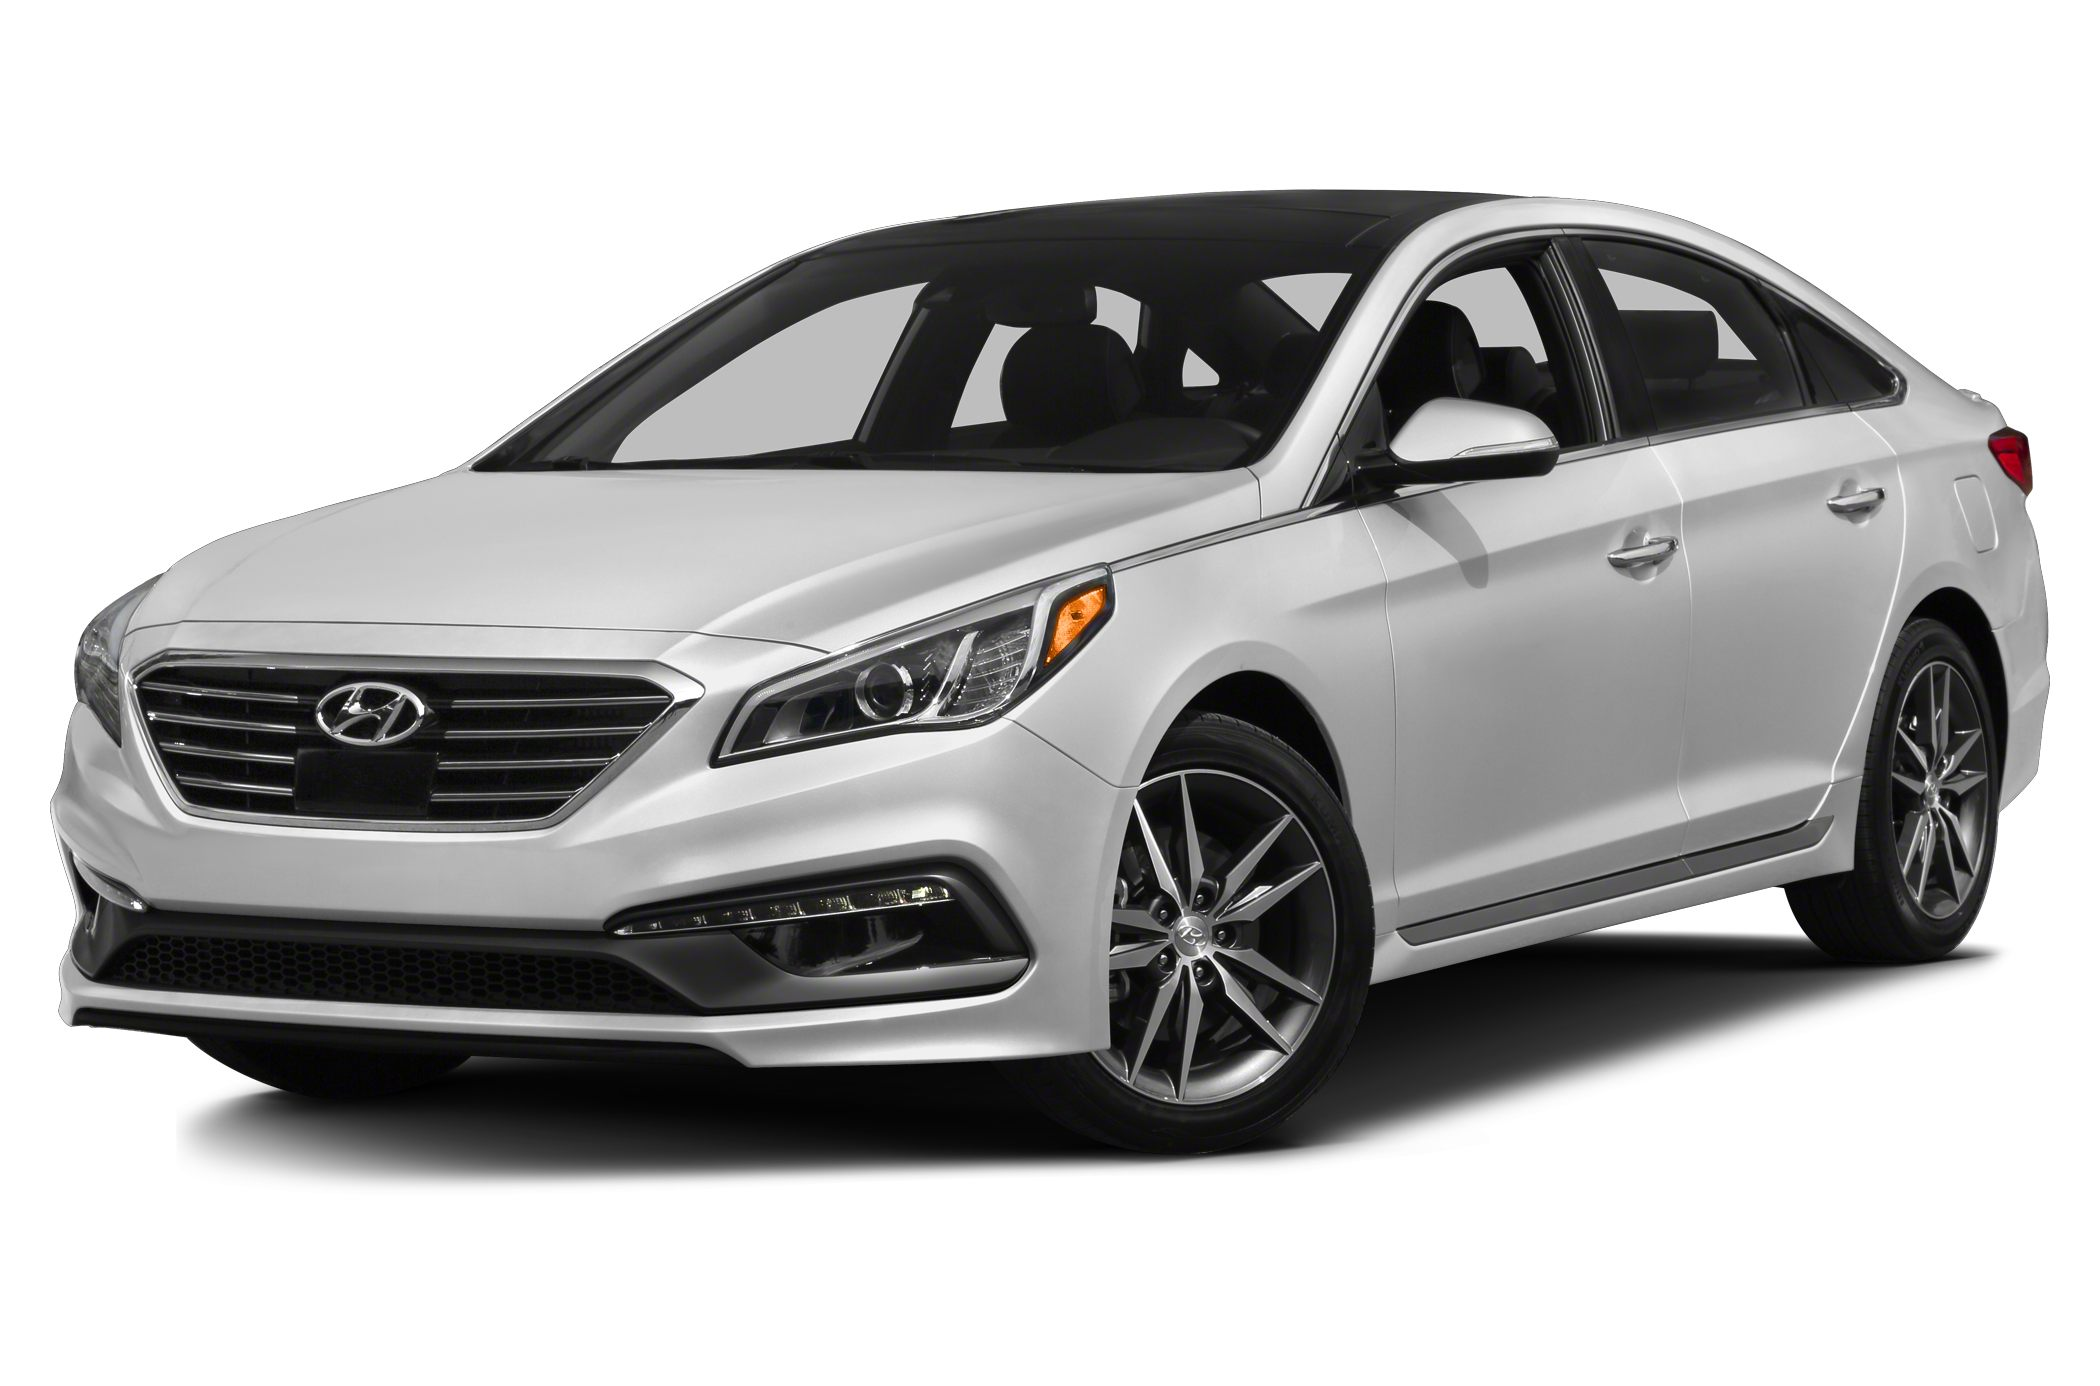 2015 Hyundai Sonata SE Sedan for sale in Bloomfield for $22,300 with 0 miles